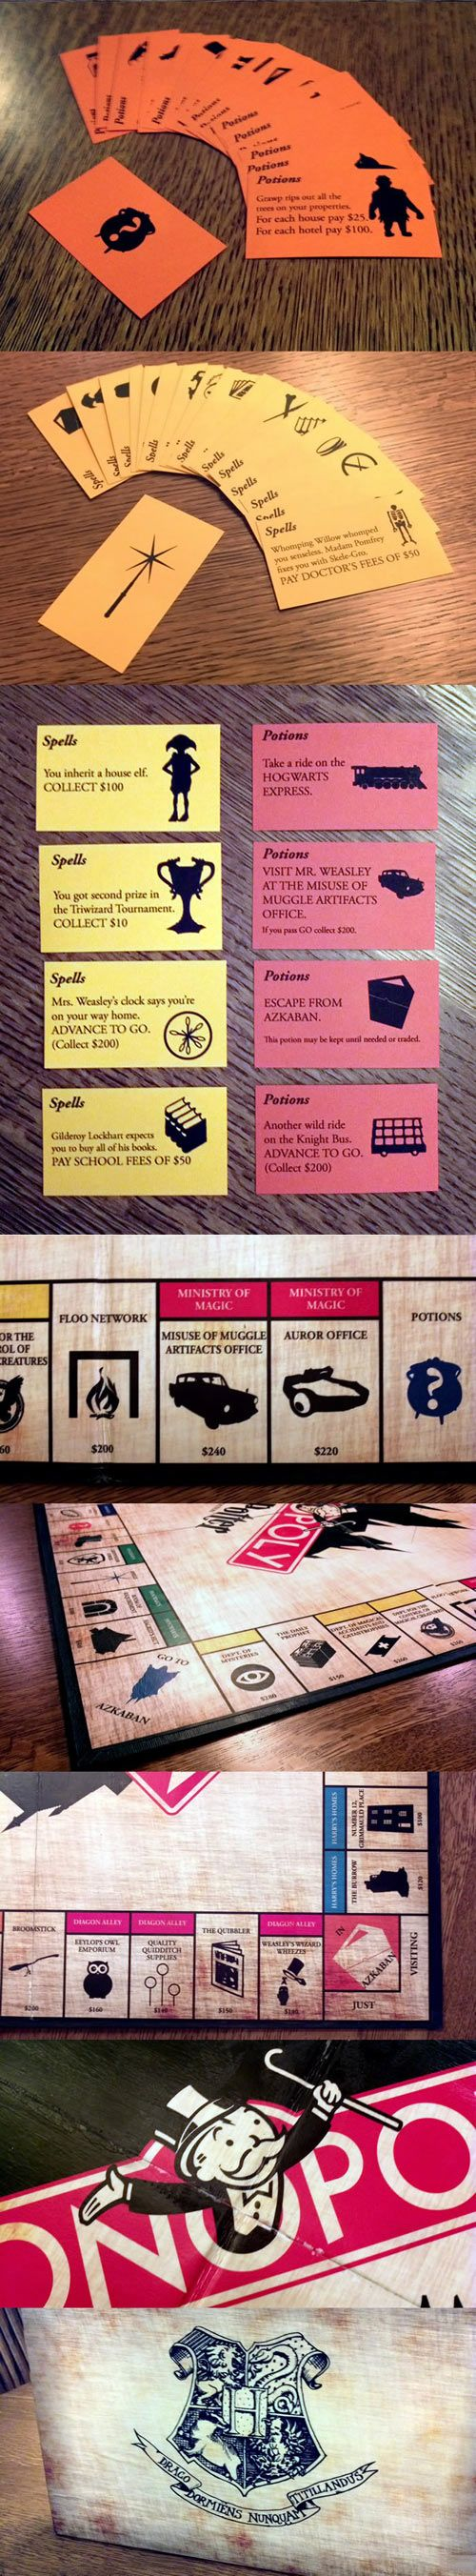 cool-Harry-Potter-Monopoly-game: if this is real, I need one. Need, not want. NEED!